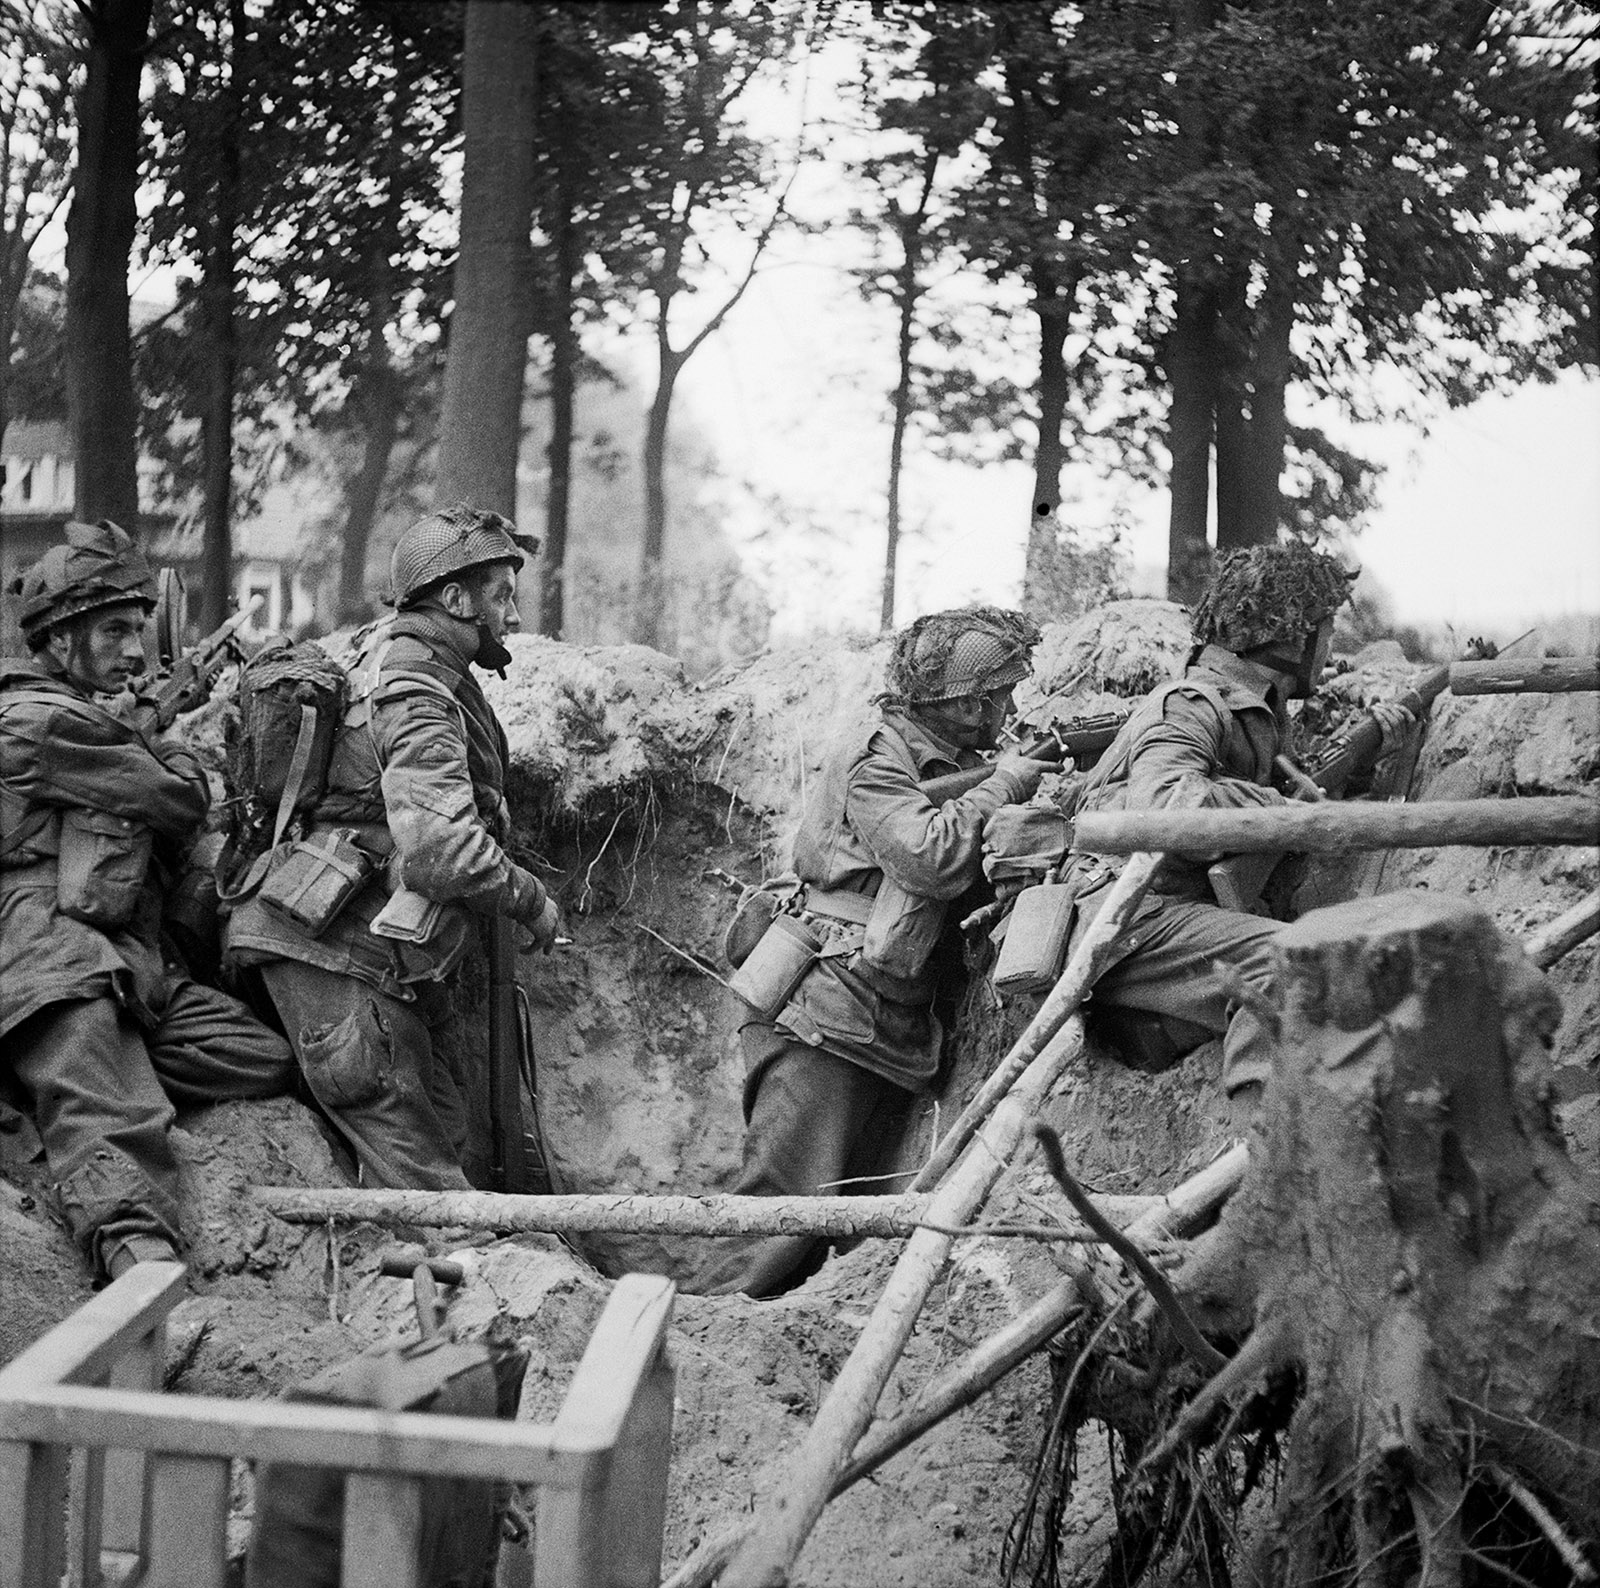 British soldiers taking cover in a shell hole near Arnhem, the Netherlands, September 17, 1944